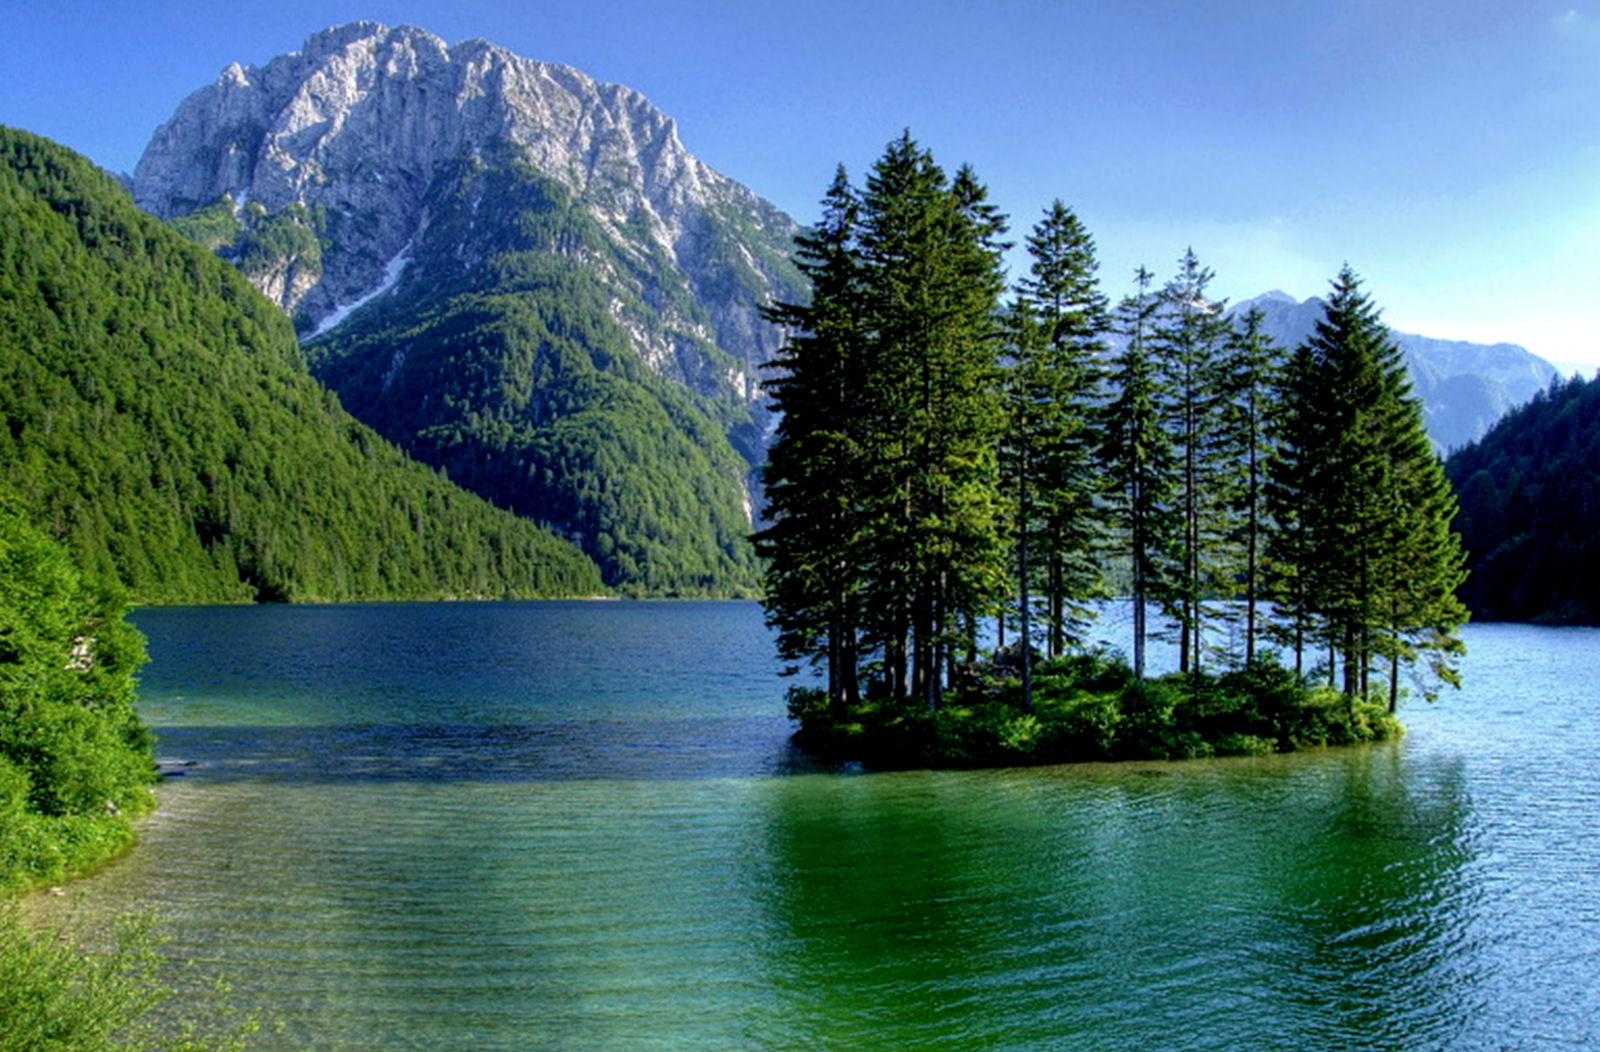 Lago del Predil is a lake in Italy near the Slovenian border